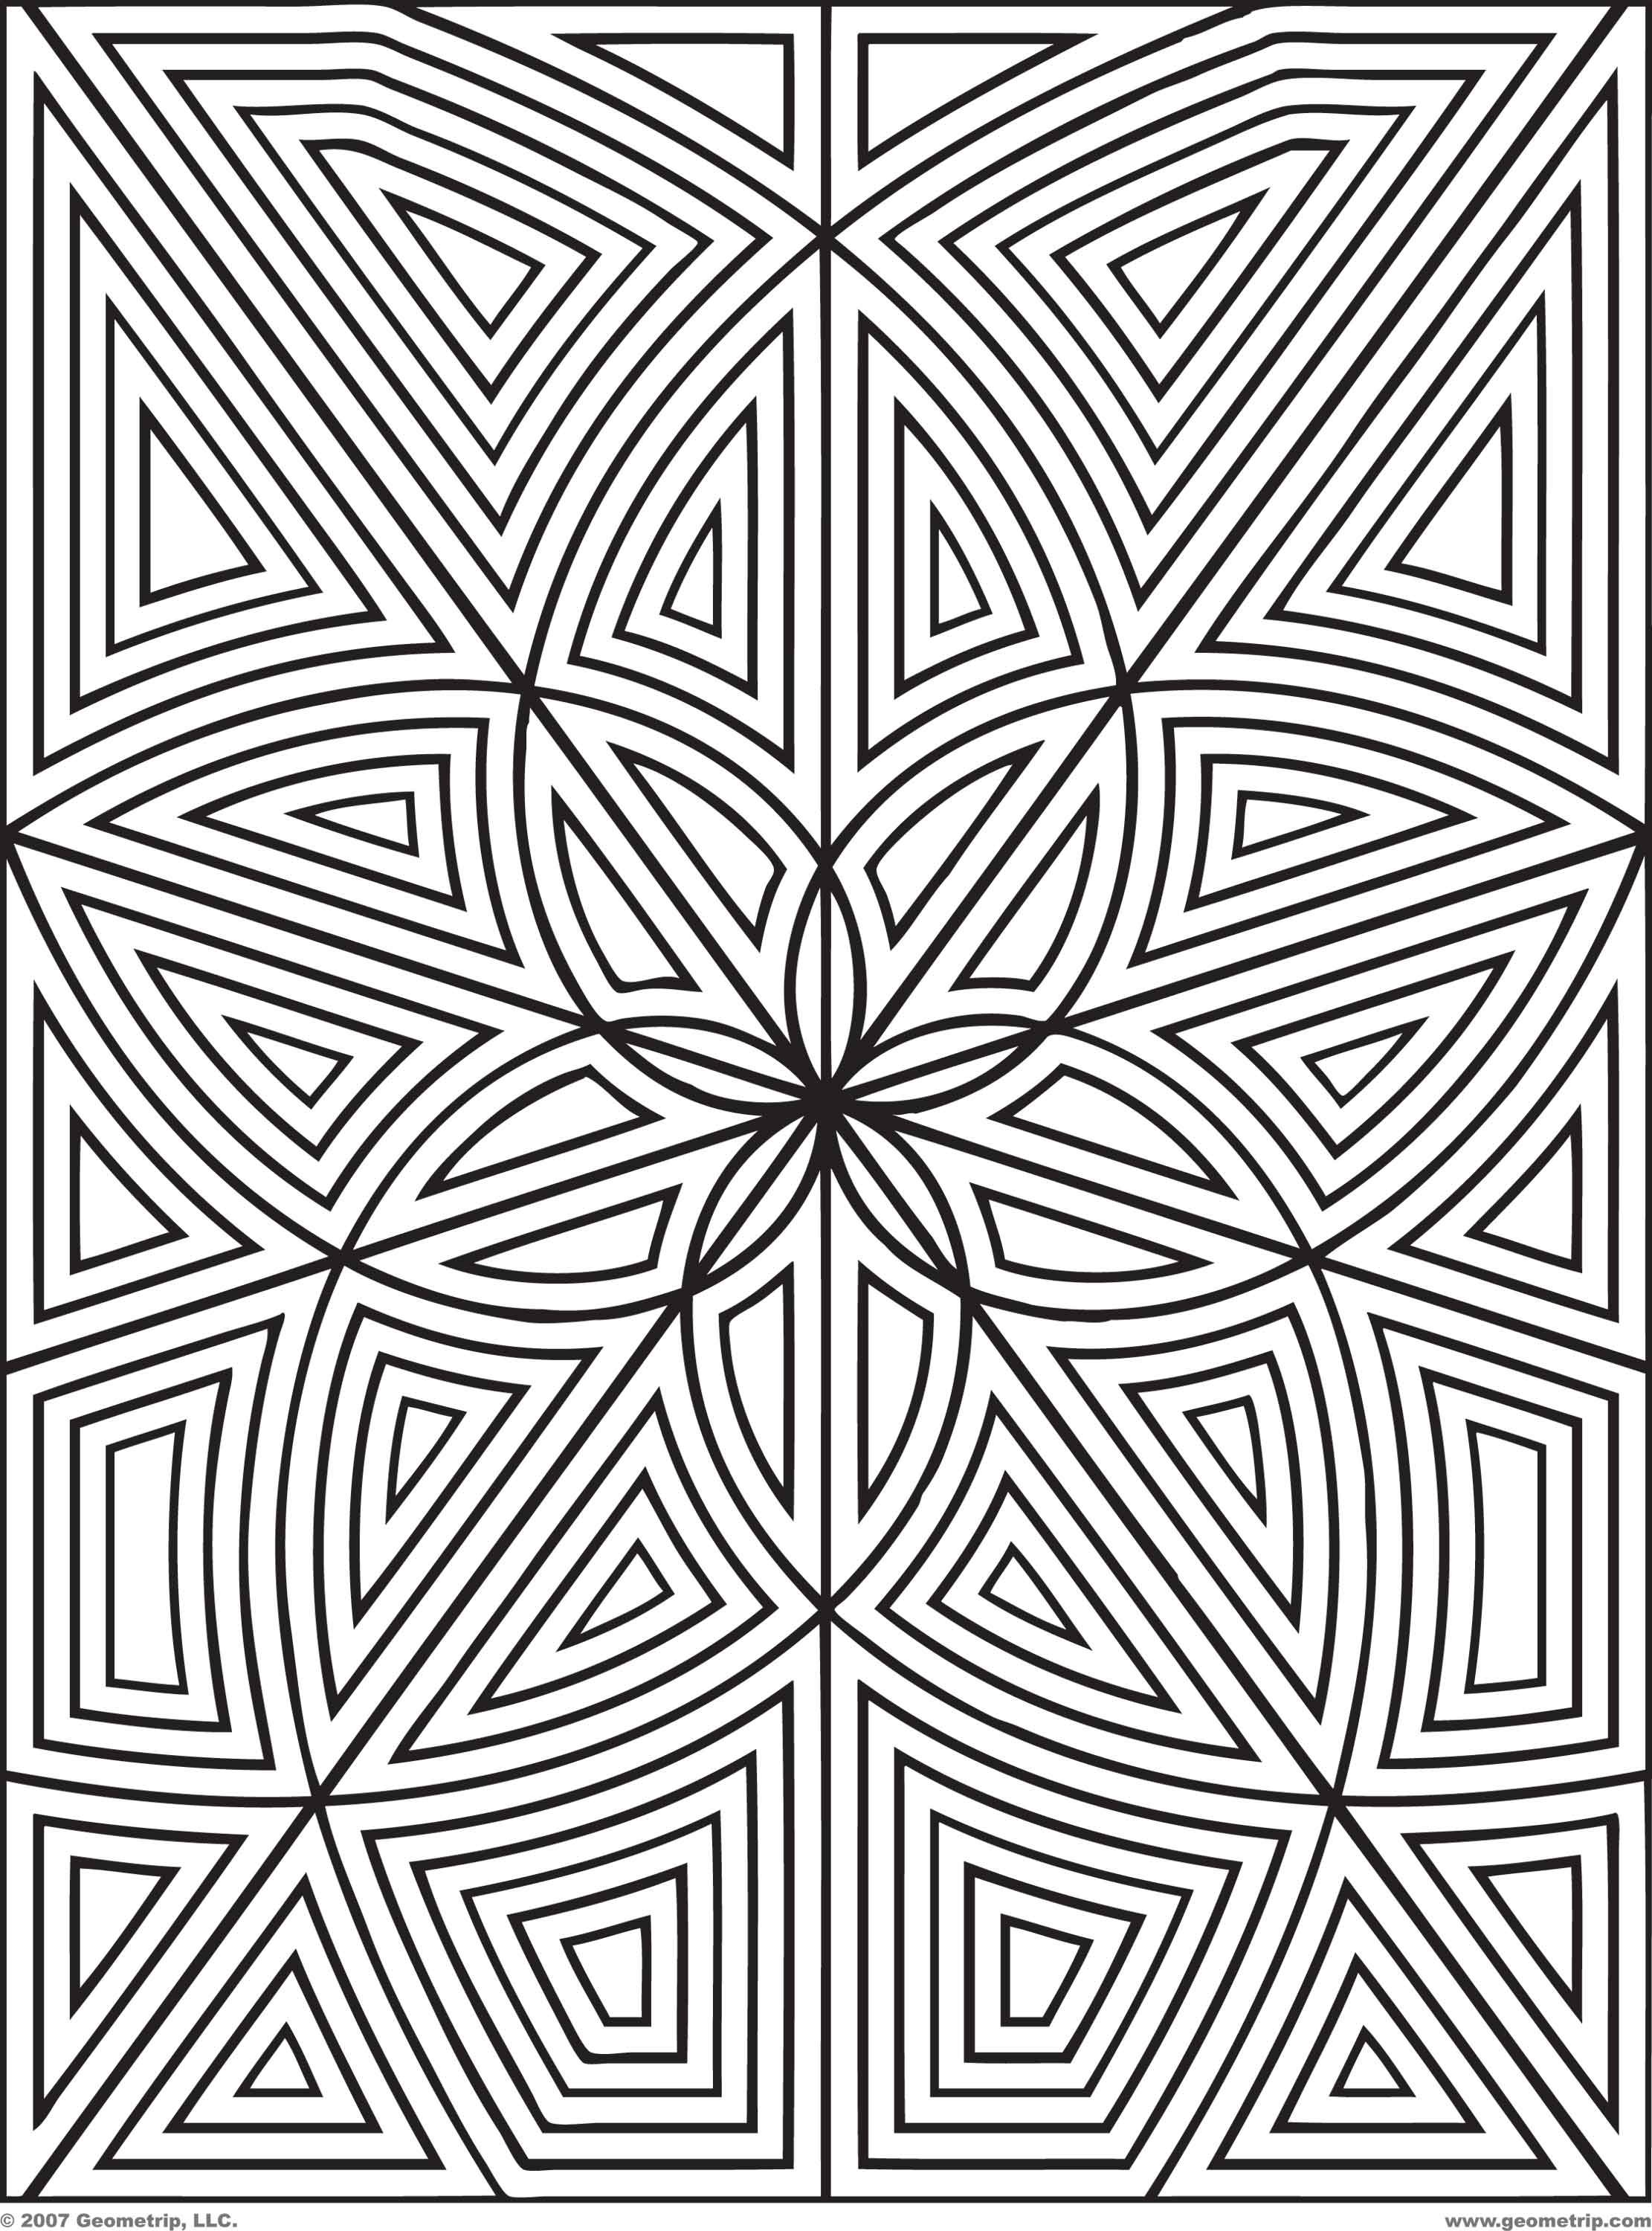 Coloring: Geometric Coloring Pages. Printable Geometric Coloring ... | 3000x2222